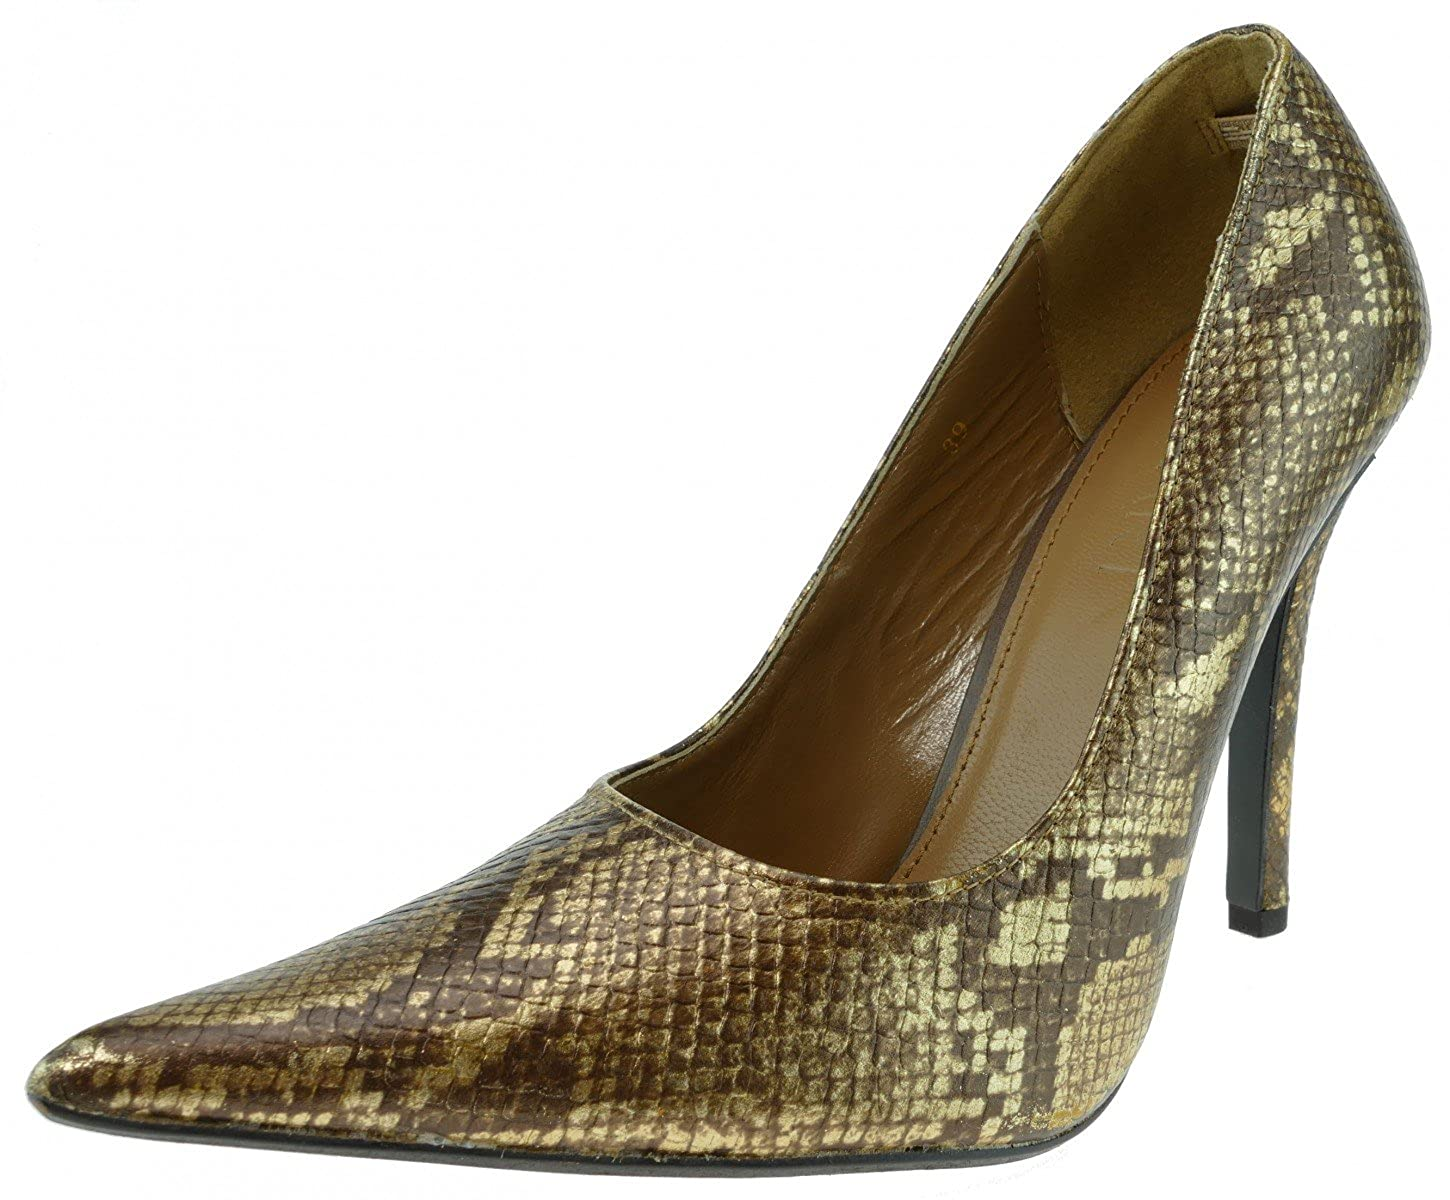 APART Fashion Apart Pumps 756791 Leder Braun Gold, Groesse 39.0